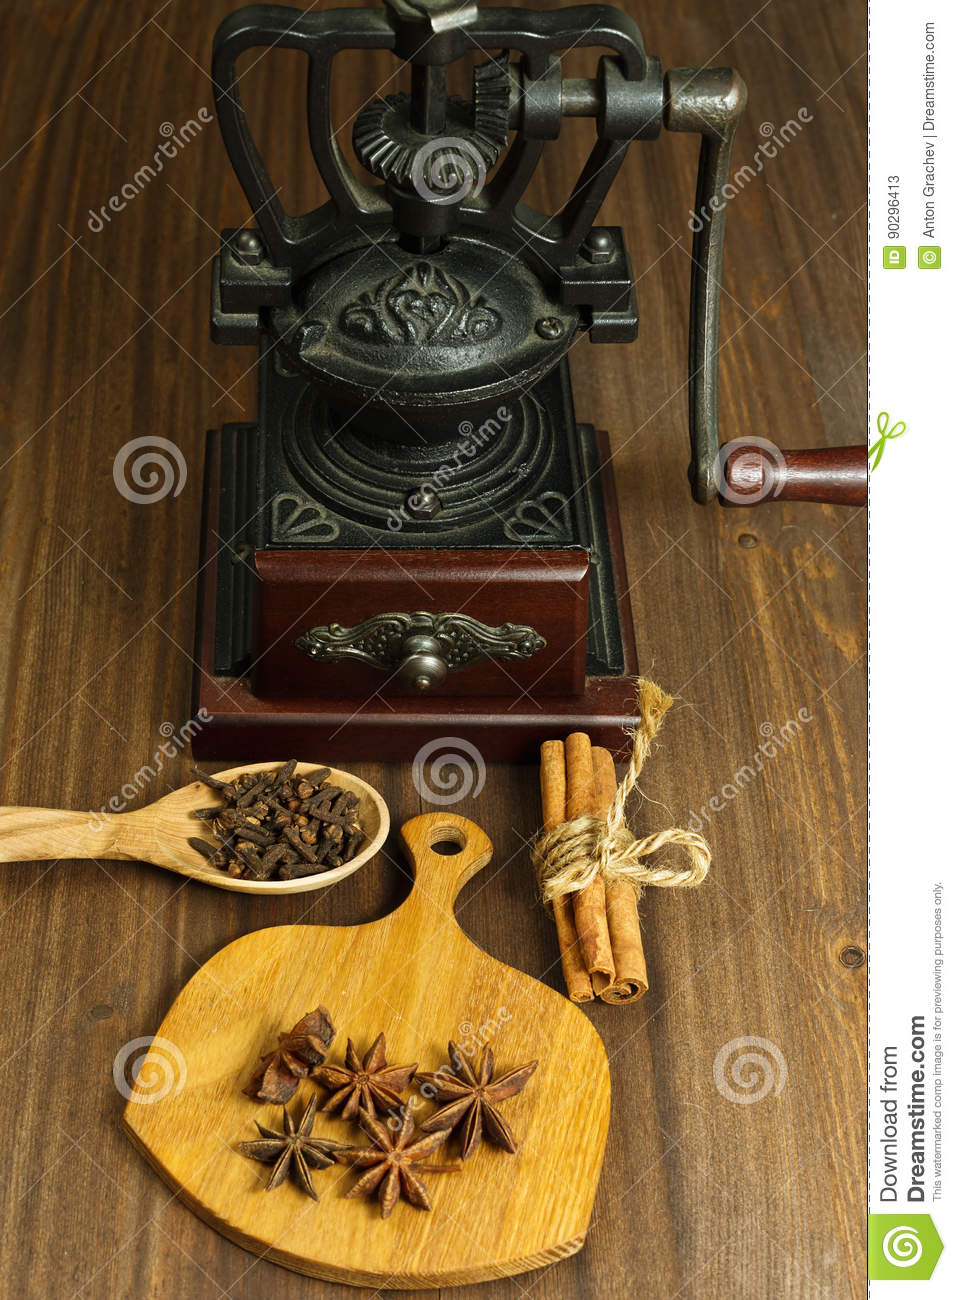 Coffee mill and some spices